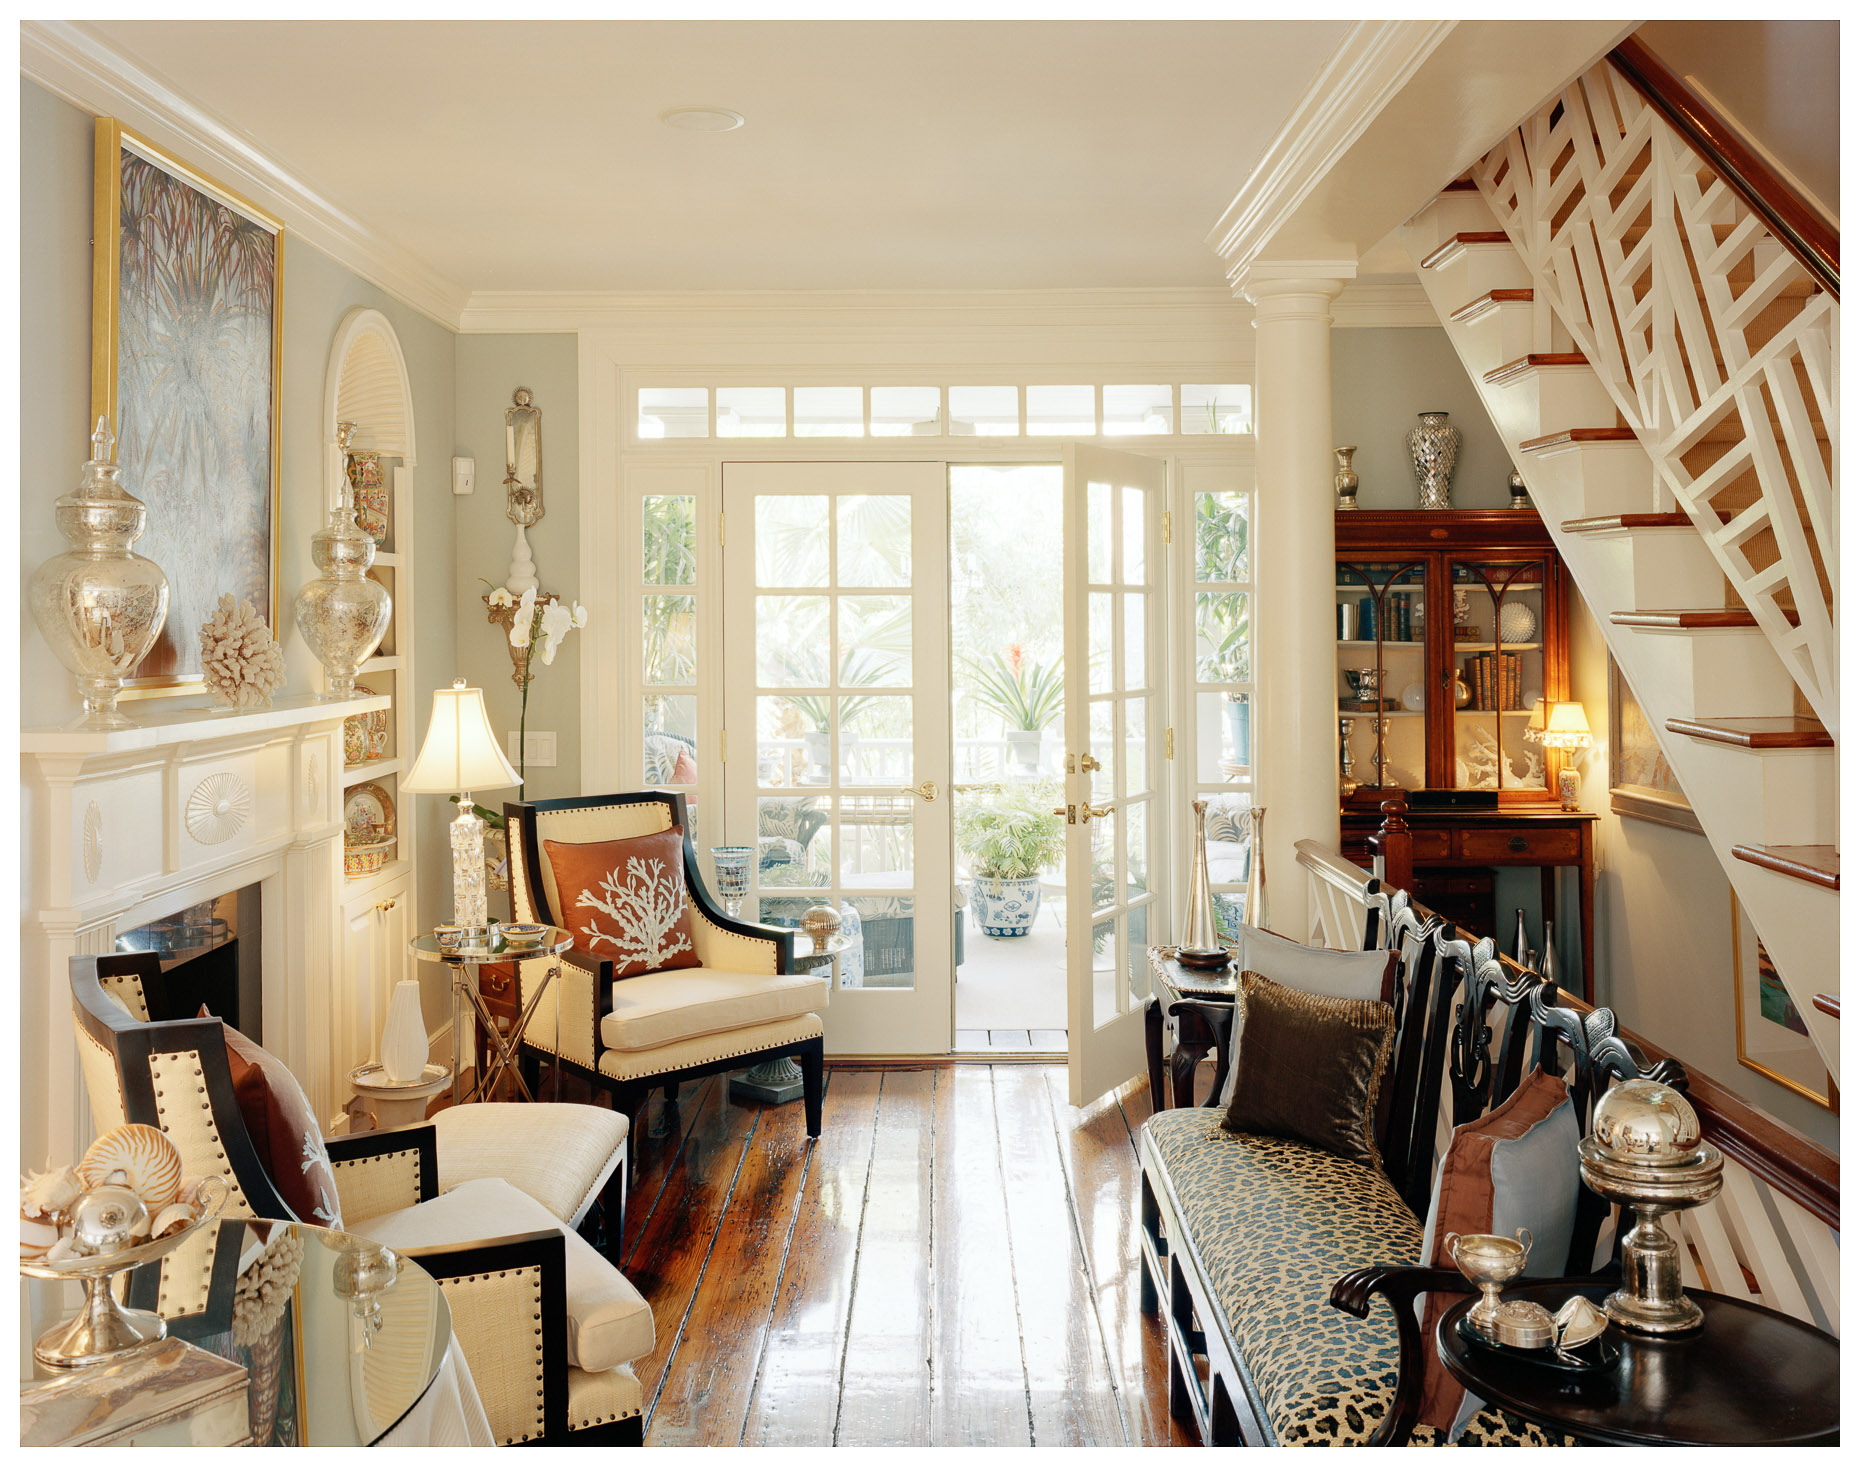 Savannah Interior | Jeannie Sims | Brian Park Photo New York | 14